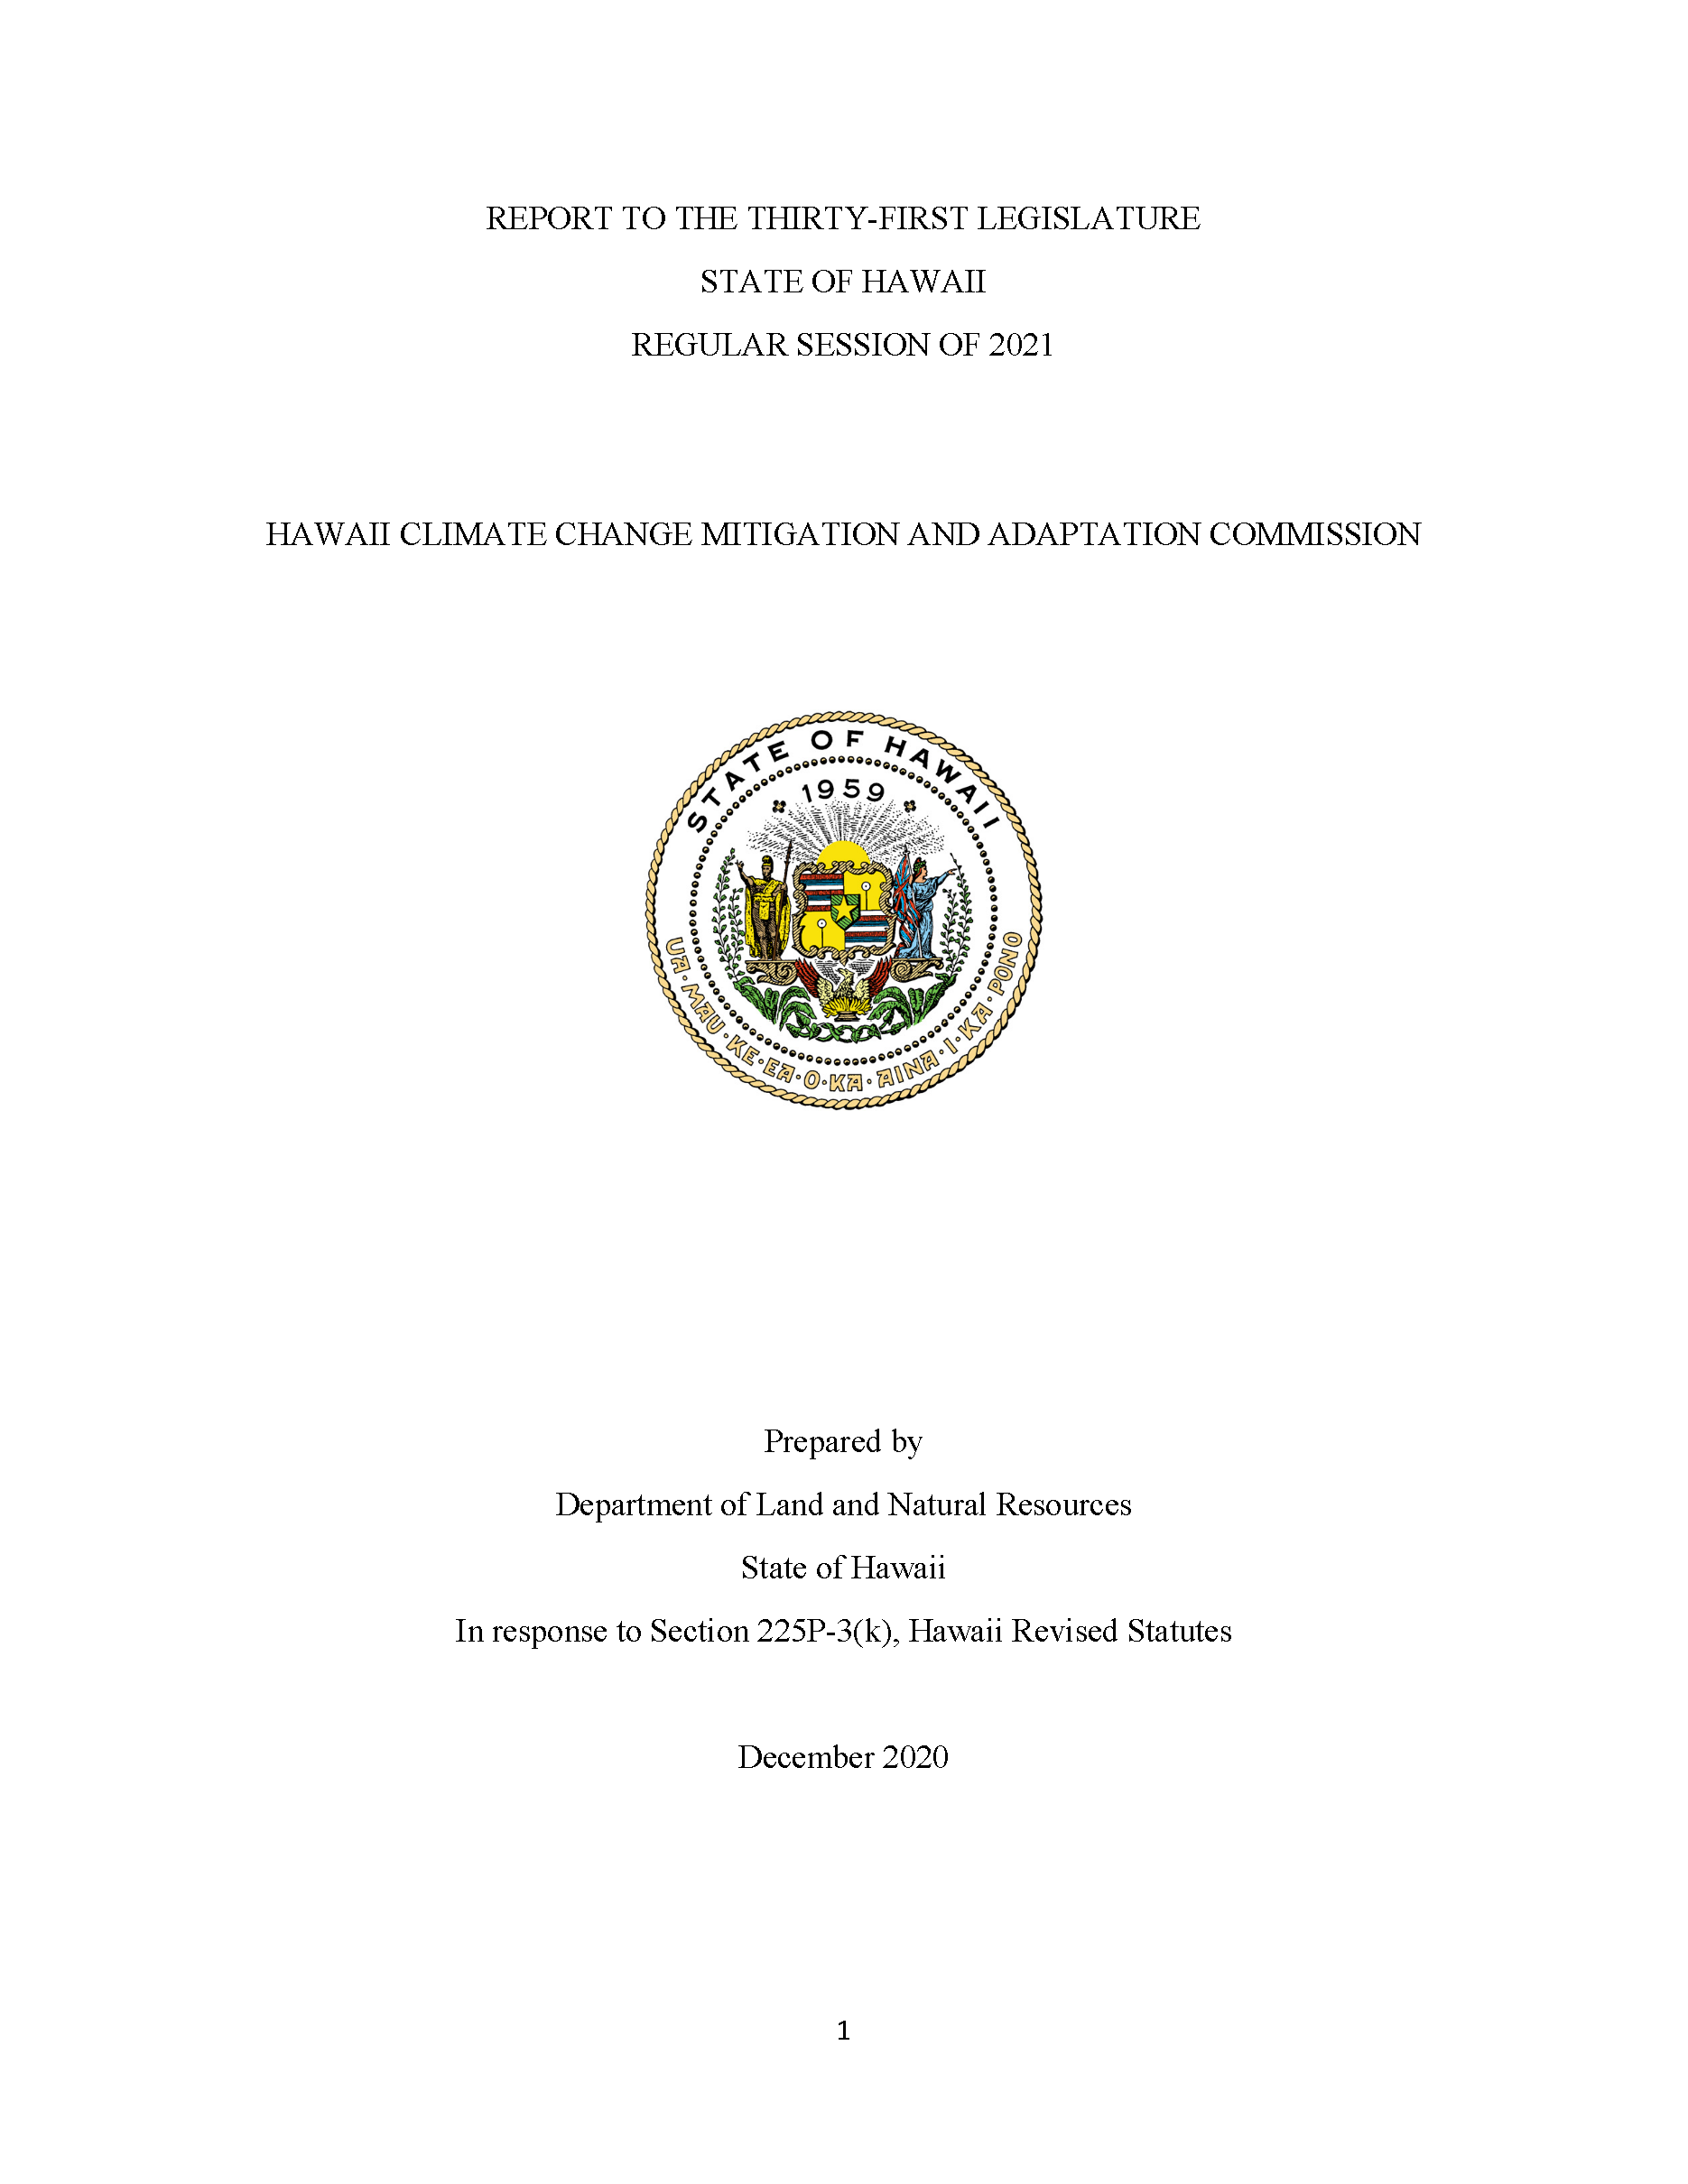 OCCL21-Hawaii-Climate-Change-Report-FY20-1